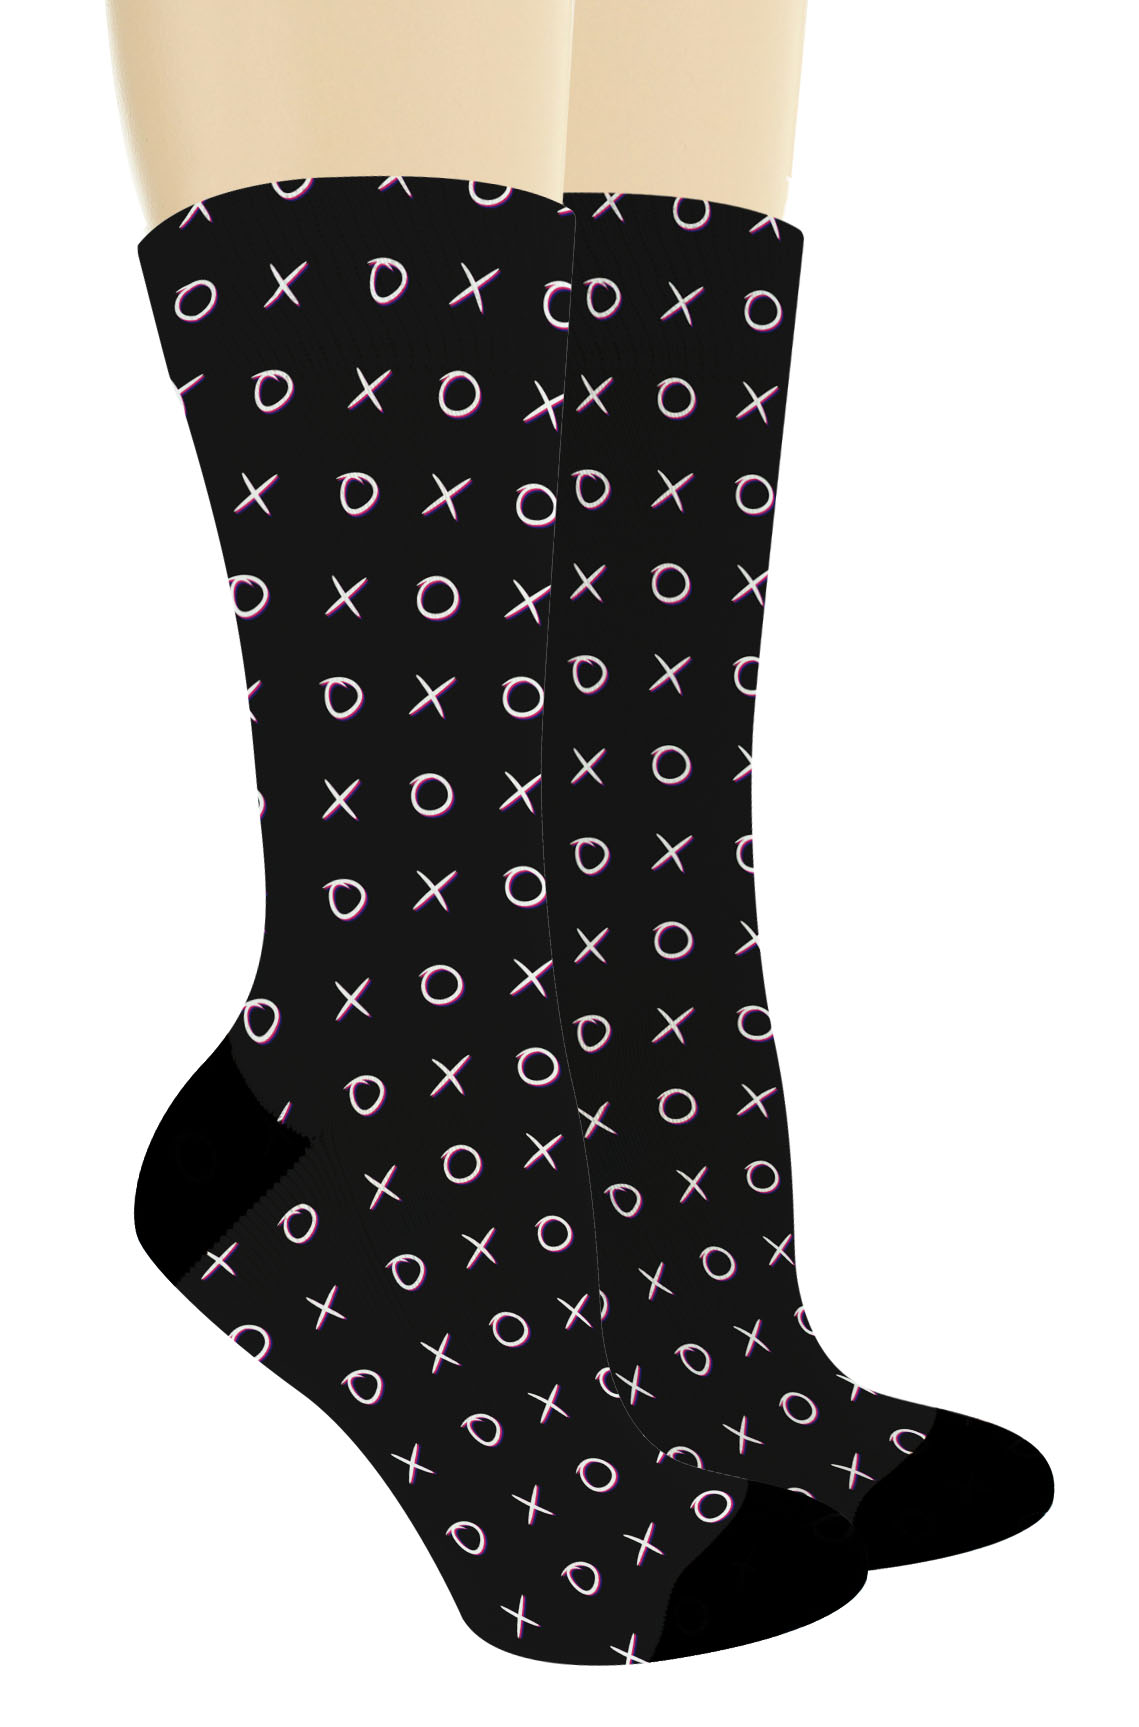 979722e58 Couples Gifts X s and O s Socks Valentines Day Gifts for Men Novelty ...